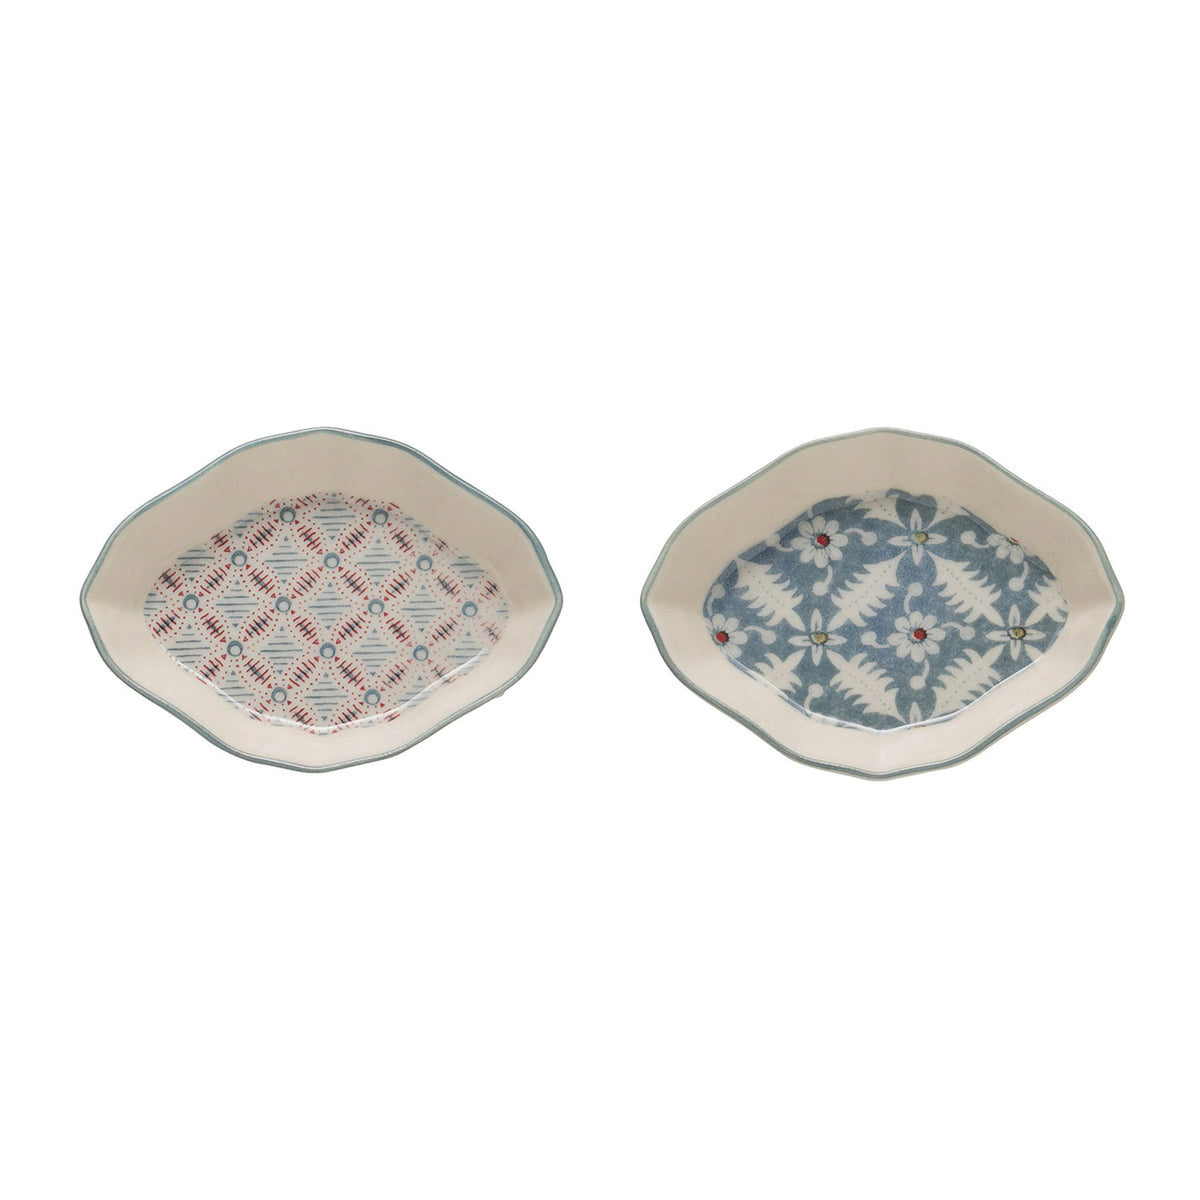 Small Red, White & Blue Stoneware Dish Set